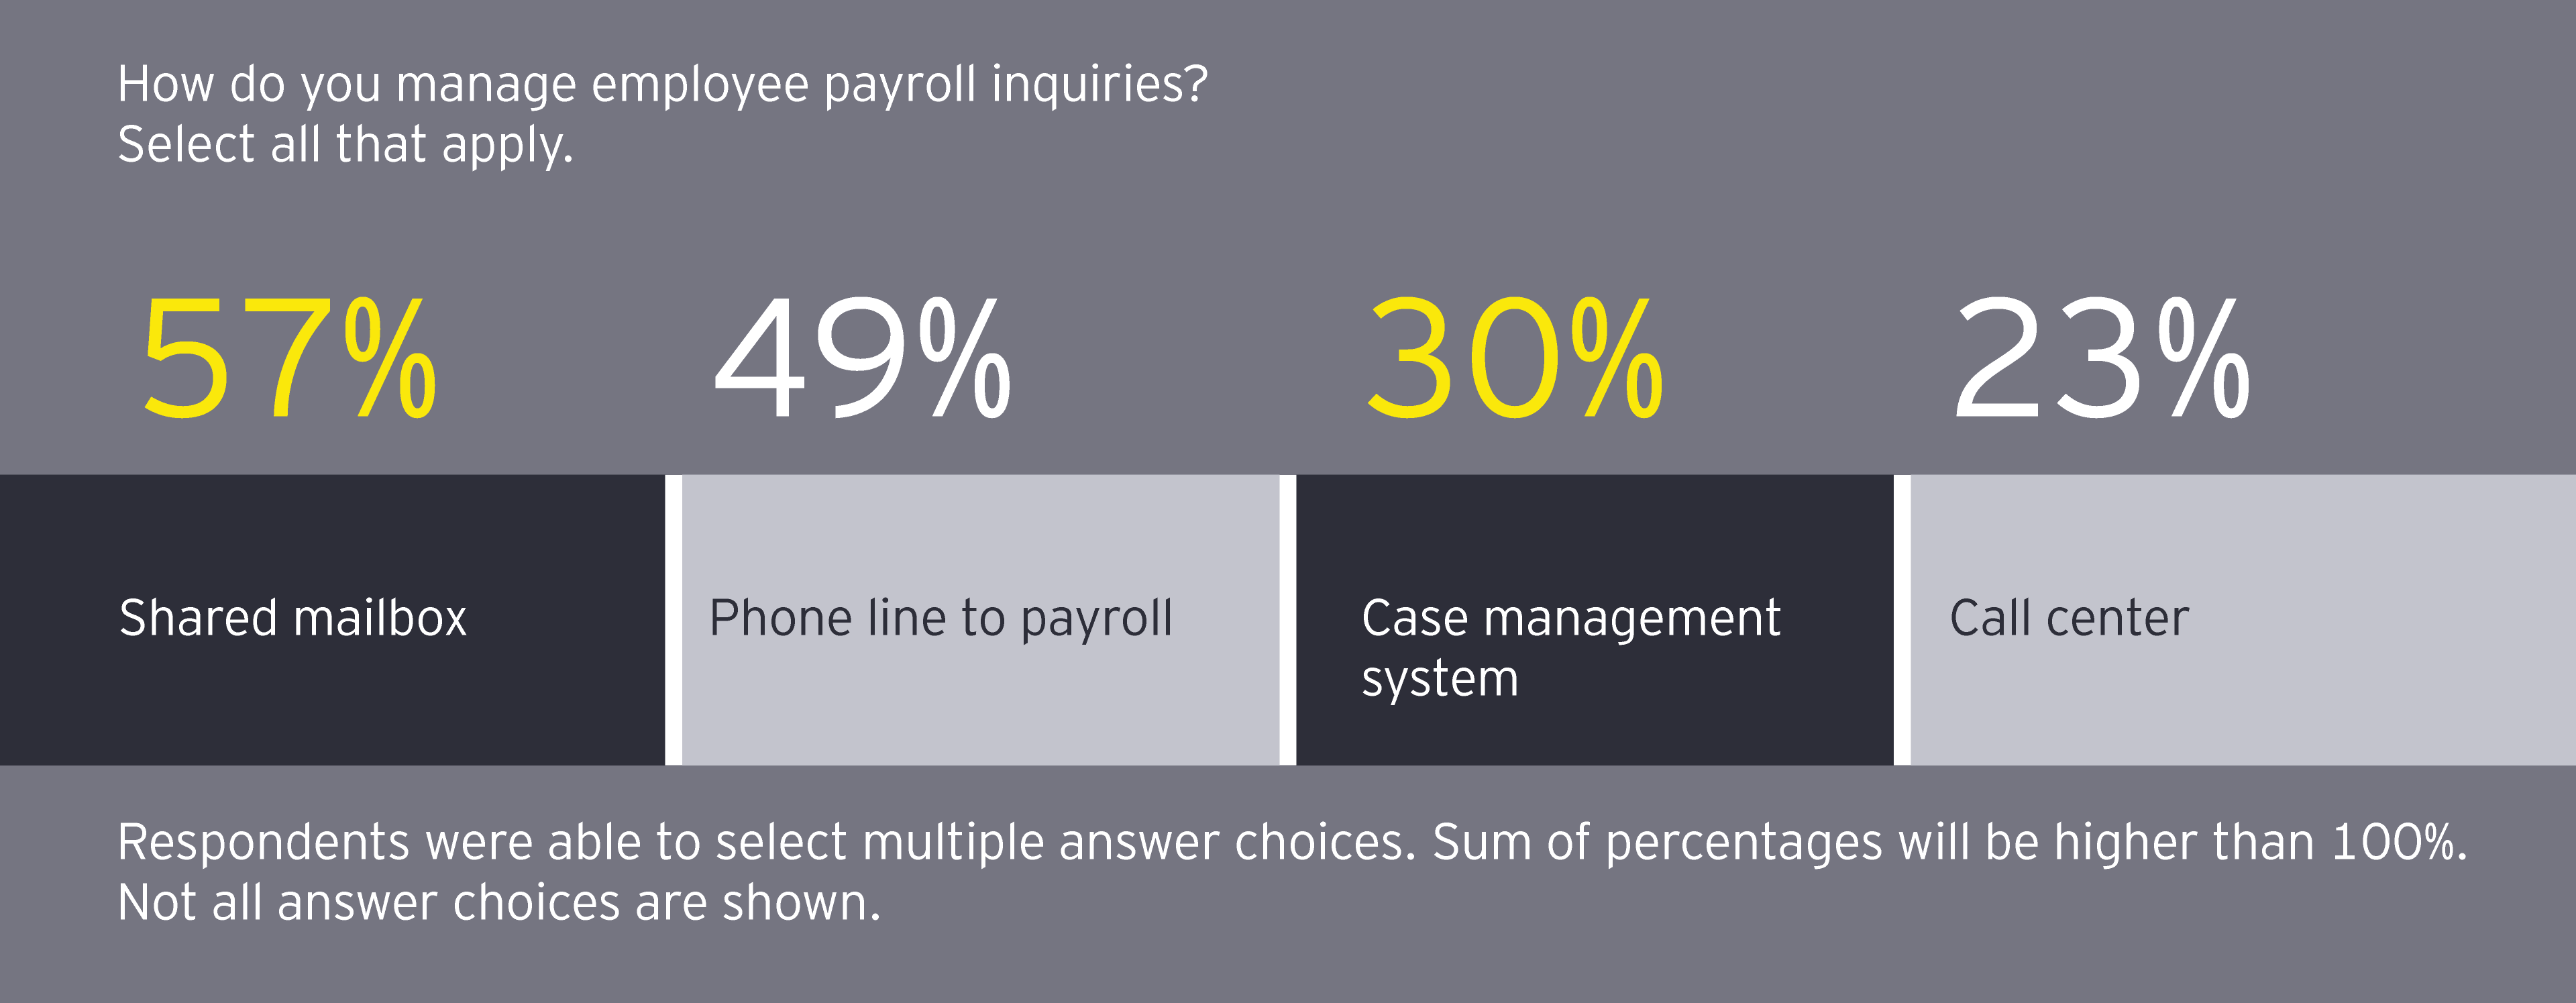 How do you manage employee payroll inquiries